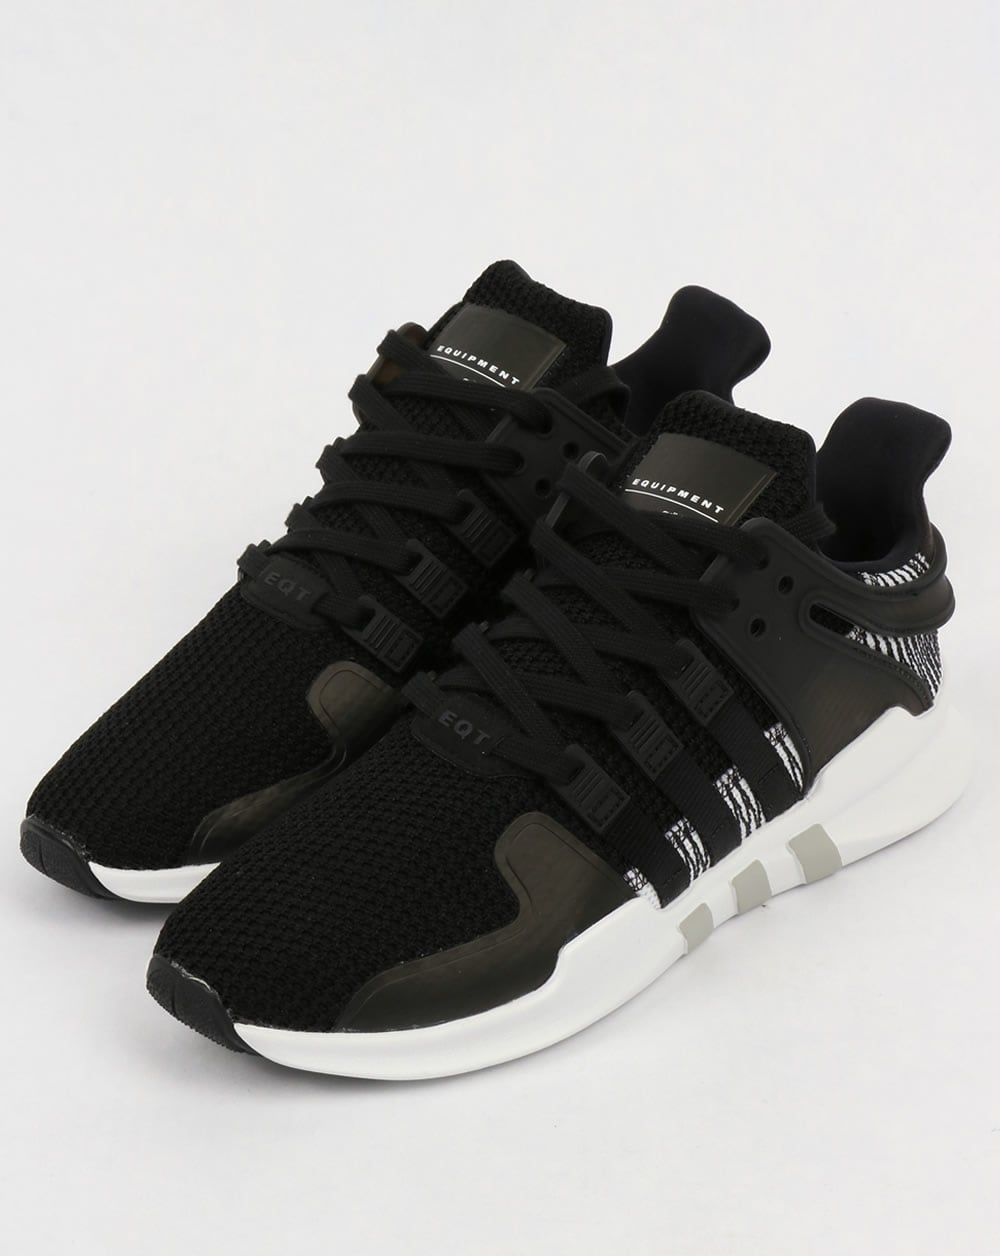 sneakers for cheap d146d 6f304 Adidas EQT Support Adv Trainers Black White